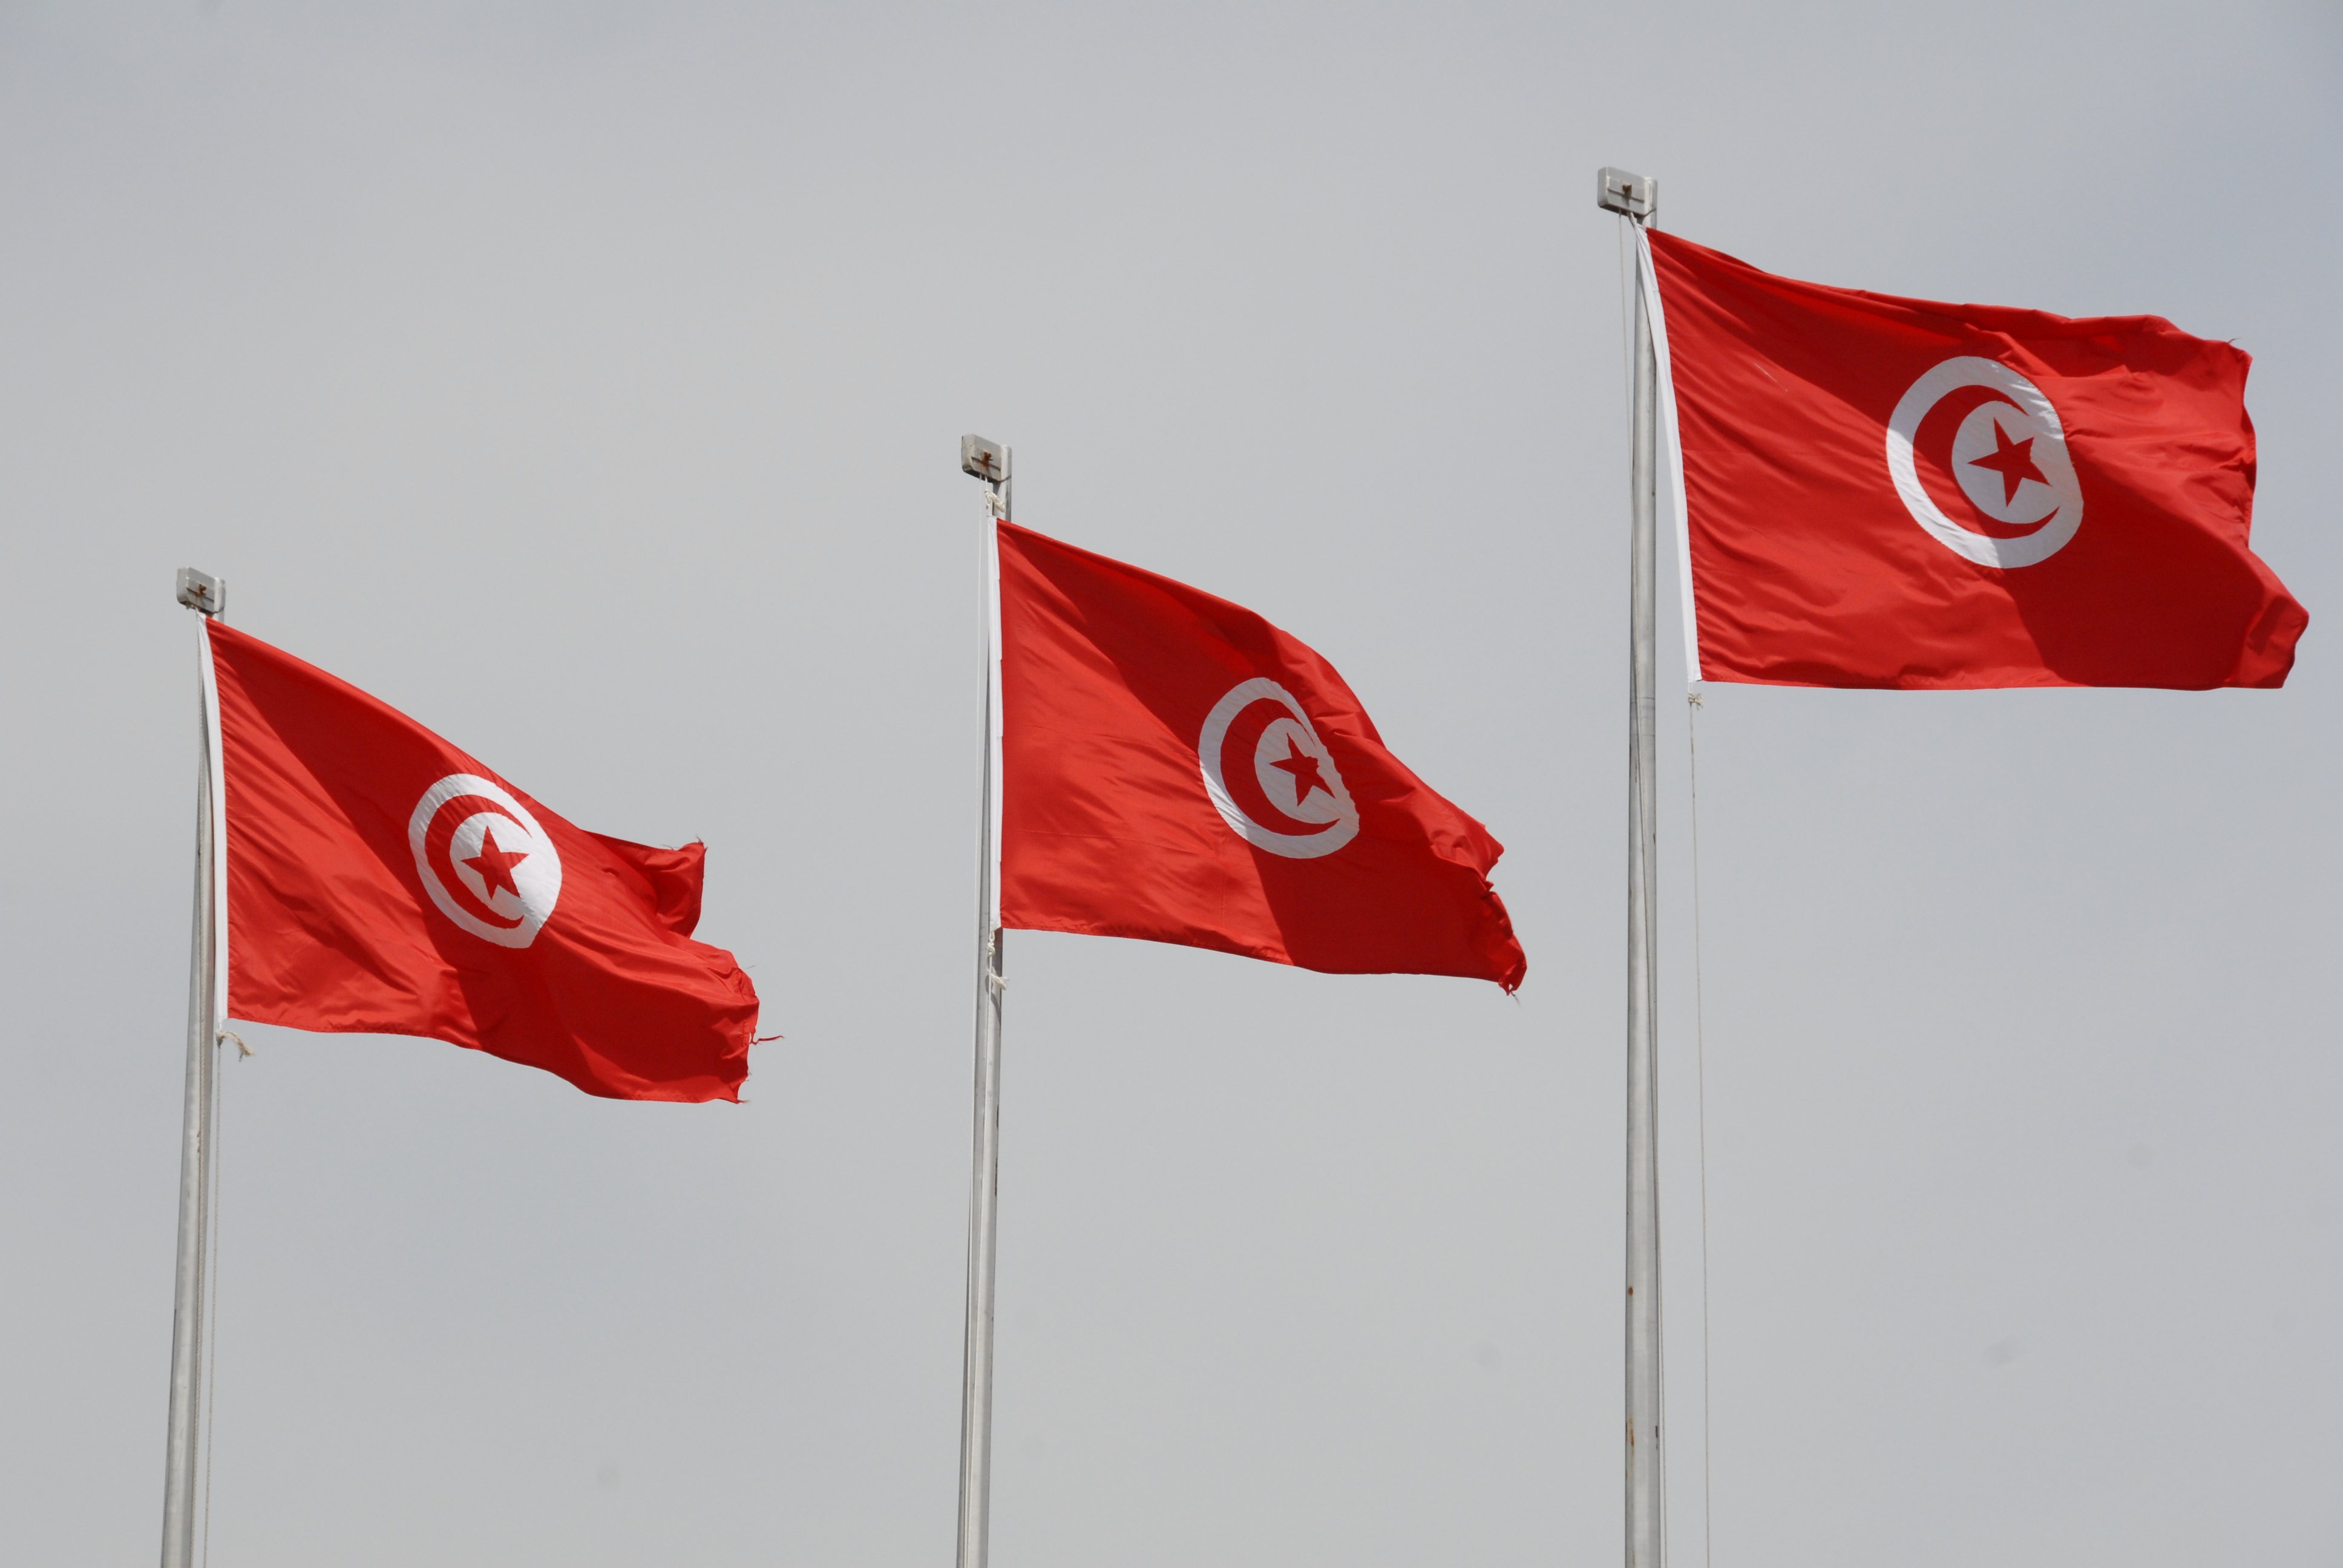 UPDATE 8-Exit poll shows tough road to form government after Tunisia election